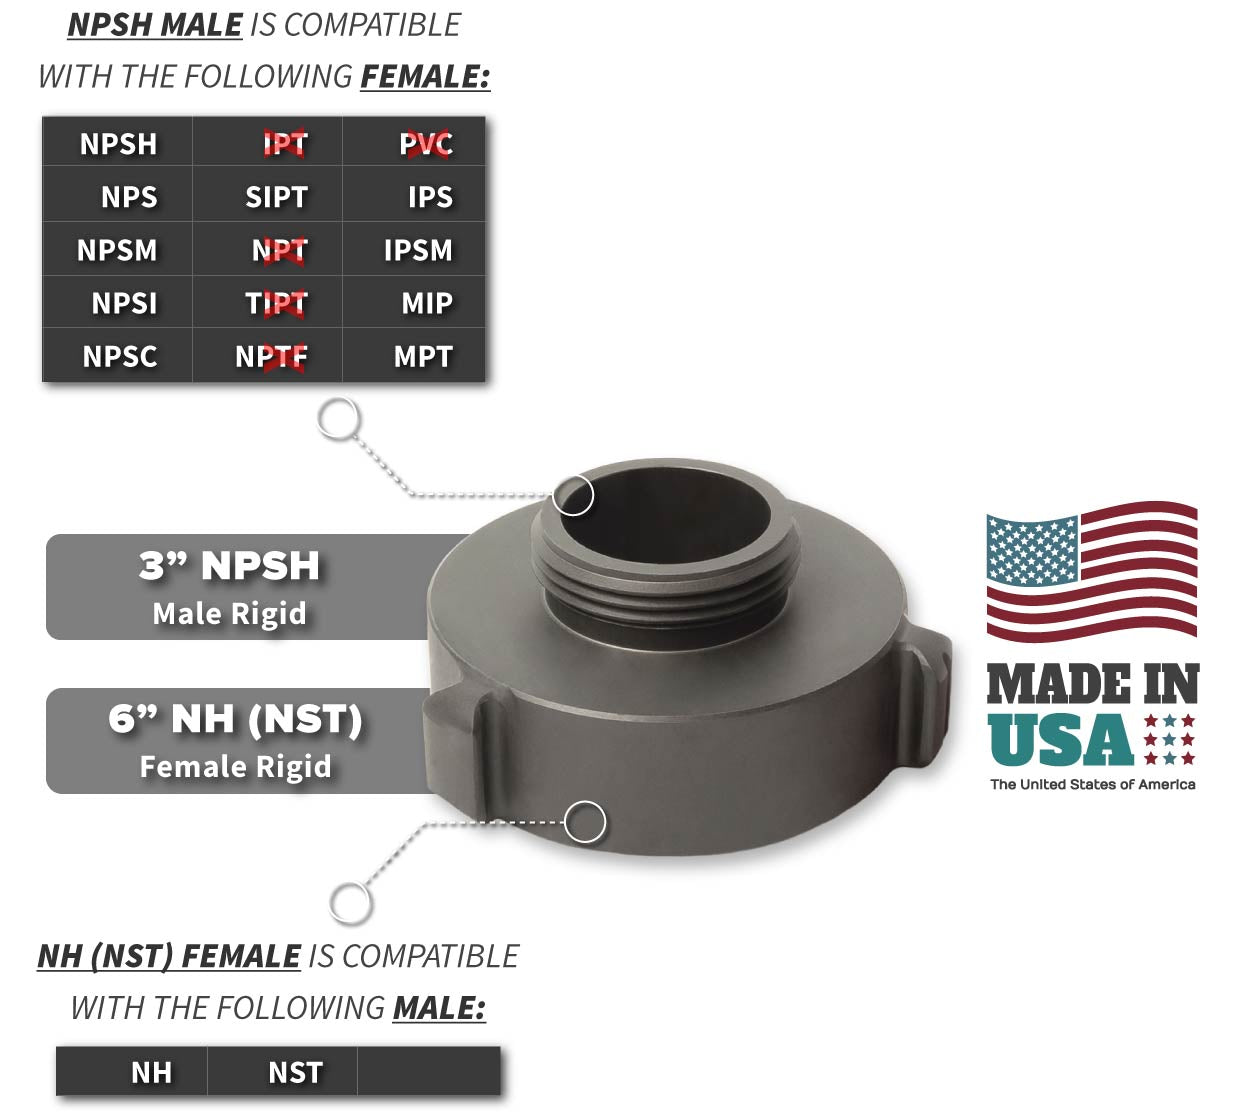 6 Inch NH-NST Female x 3 Inch NPSH Male Compatibility Thread Chart